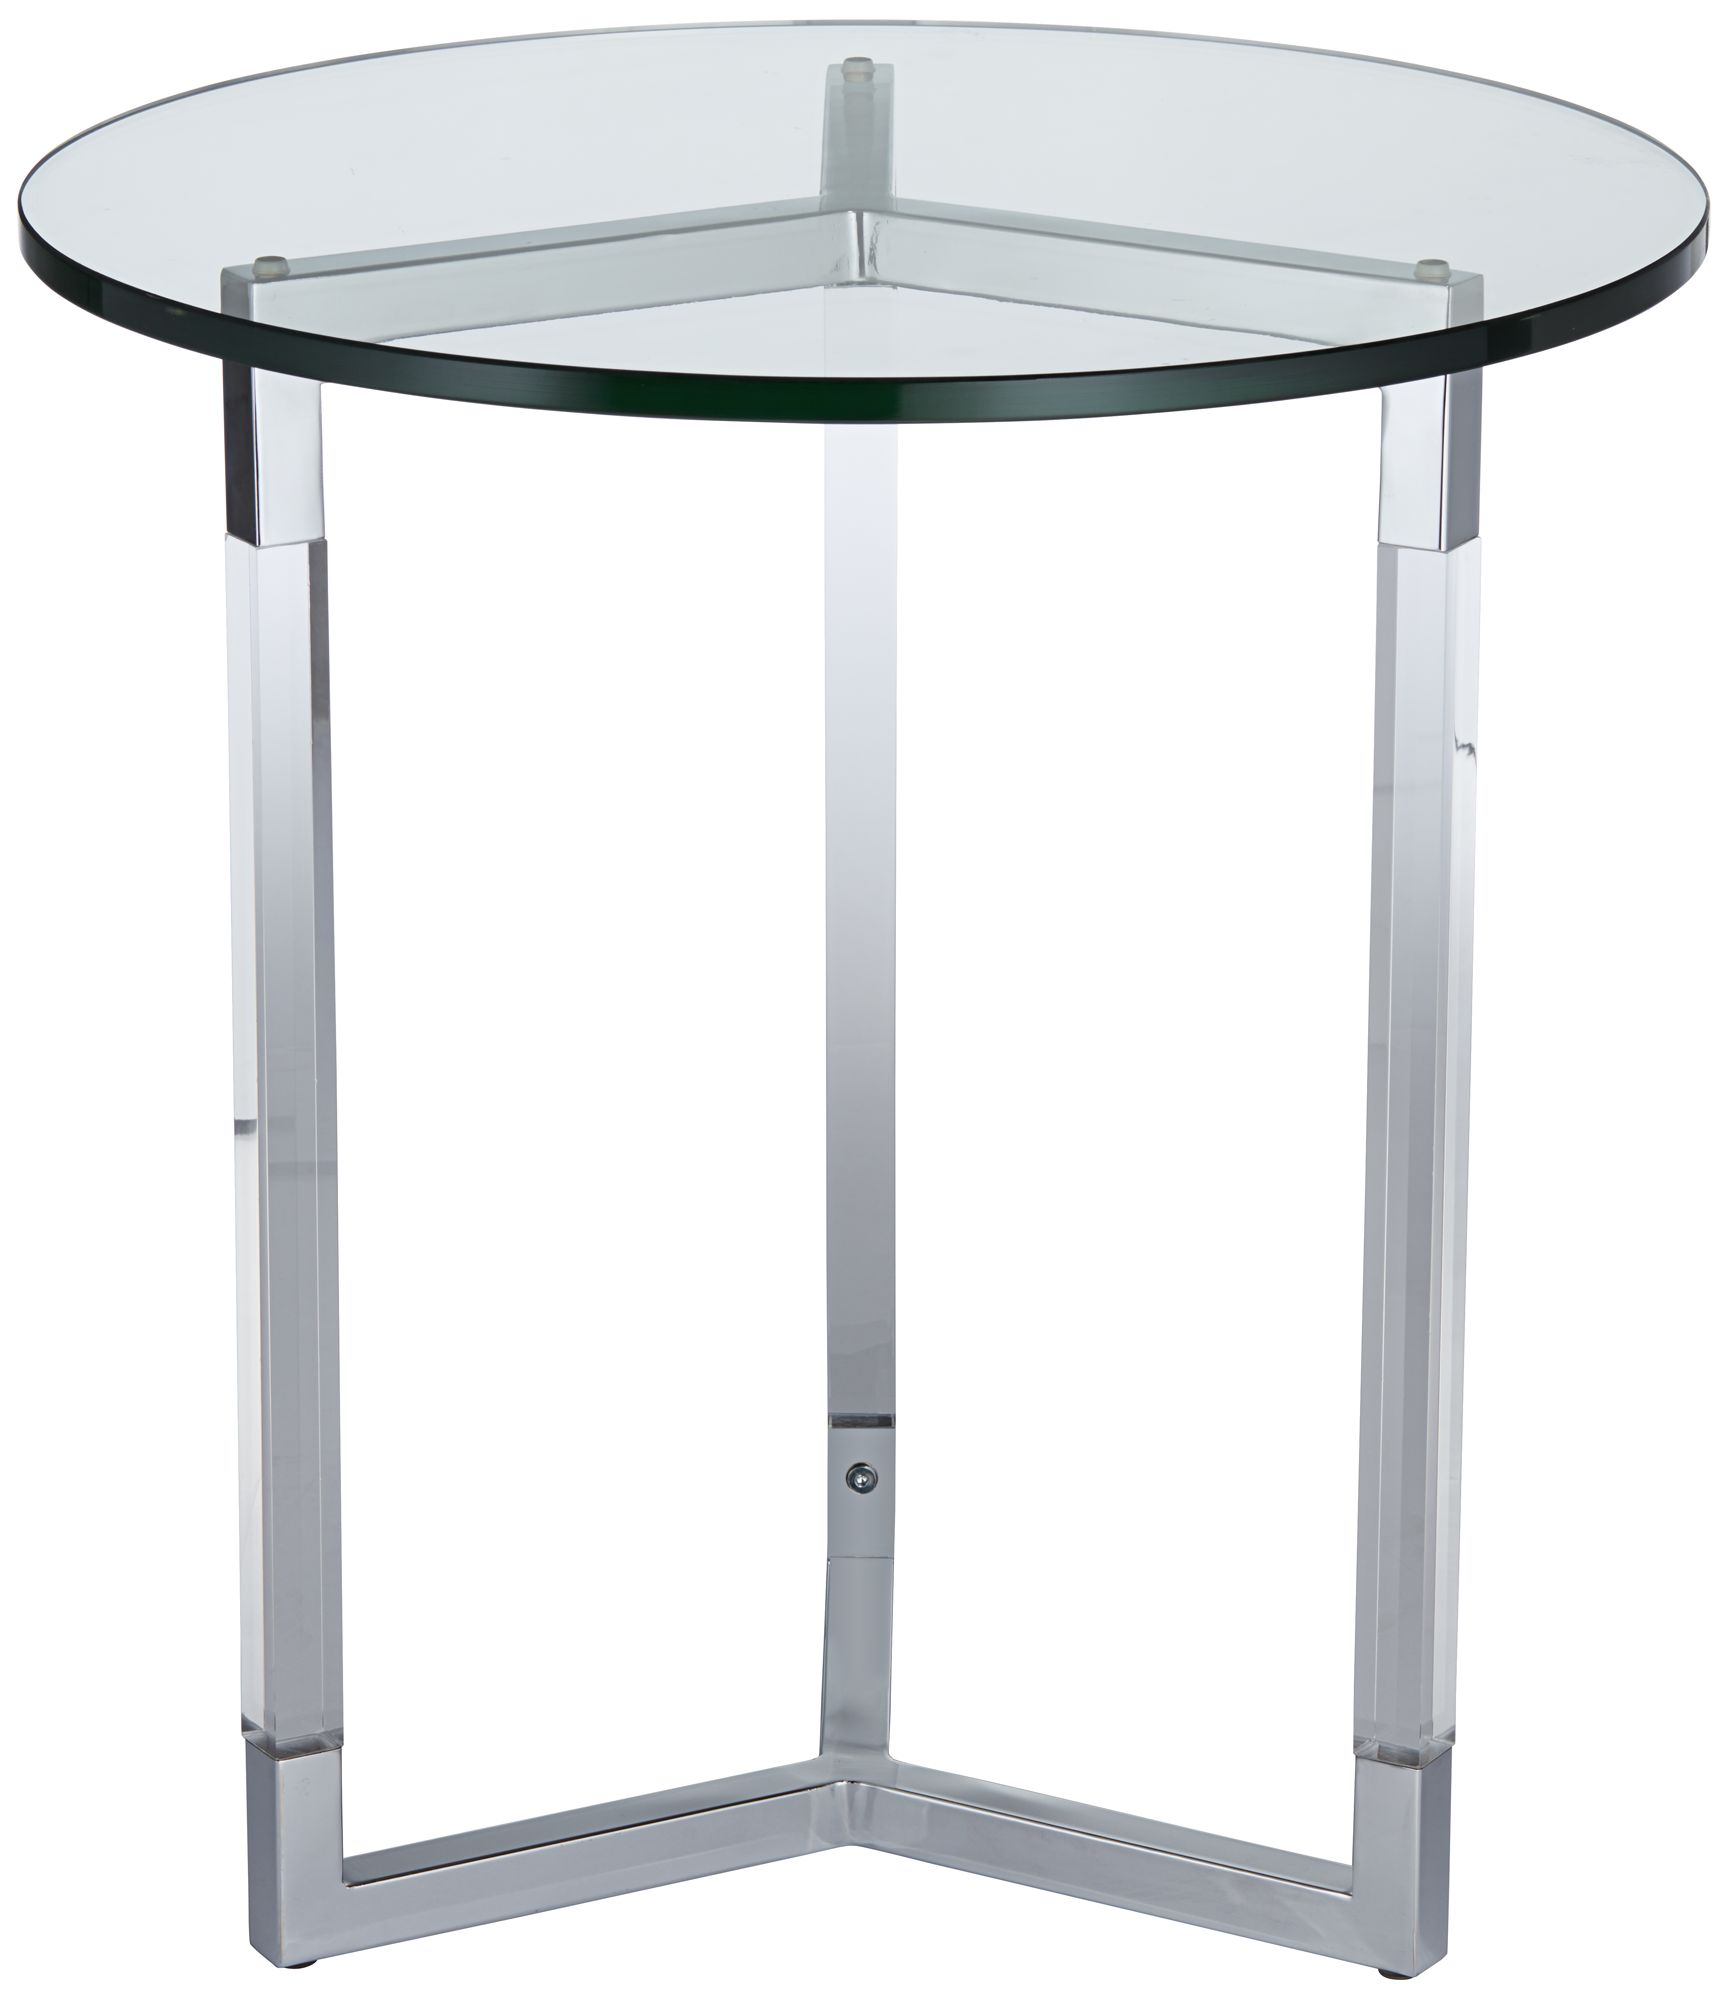 Linda Acrylic And Tempered Glass Round Accent Table